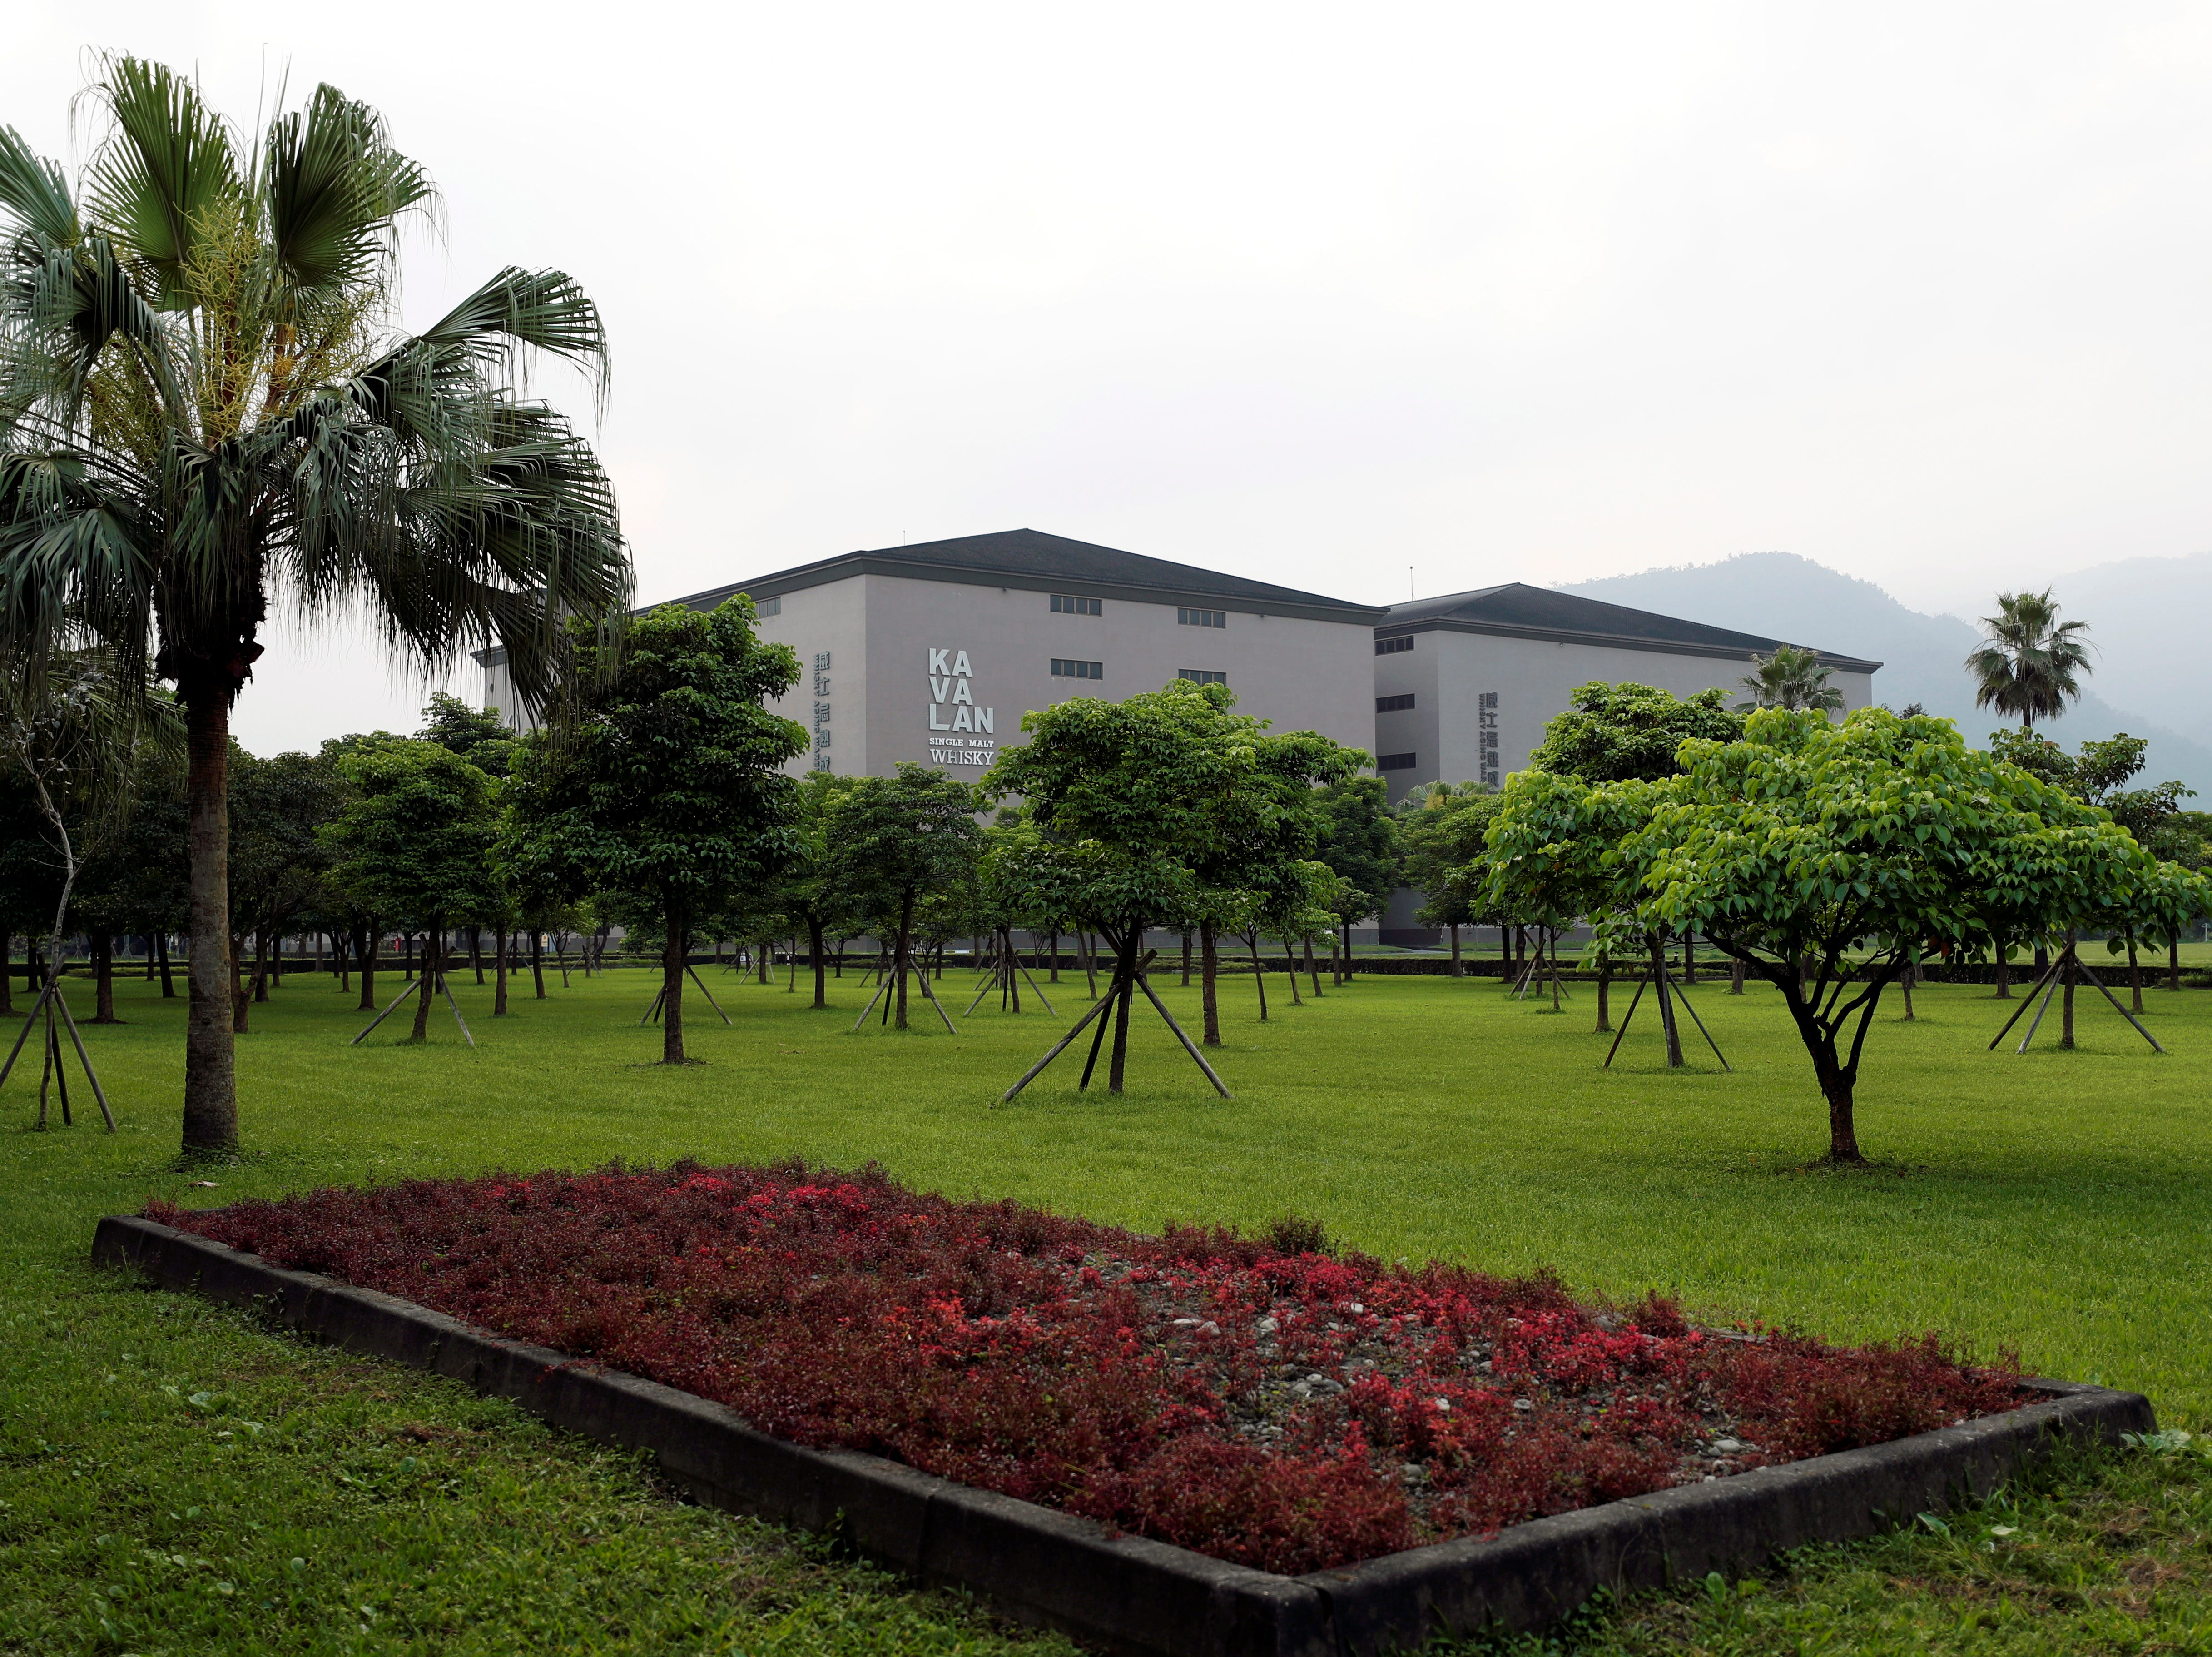 epa07449503 Trees surround the Kavalan Distillery building in Yuanshan, Yilan County, Taiwan, 18 March 2019 (issued 20 March 2019). Taiwan is located far away from traditional producers of whiskey, where the natural conditions and climate are seen as unconducive to making fine whiskey. Taiwanese whiskey brand Kavalan, broke many stereotypes, including the need for long aging, the replication of the Scottish climate and most of the industry's common practices to produce its whiskey.  EPA-EFE/RITCHIE B. TONGO ORG XMIT: _XRI7333